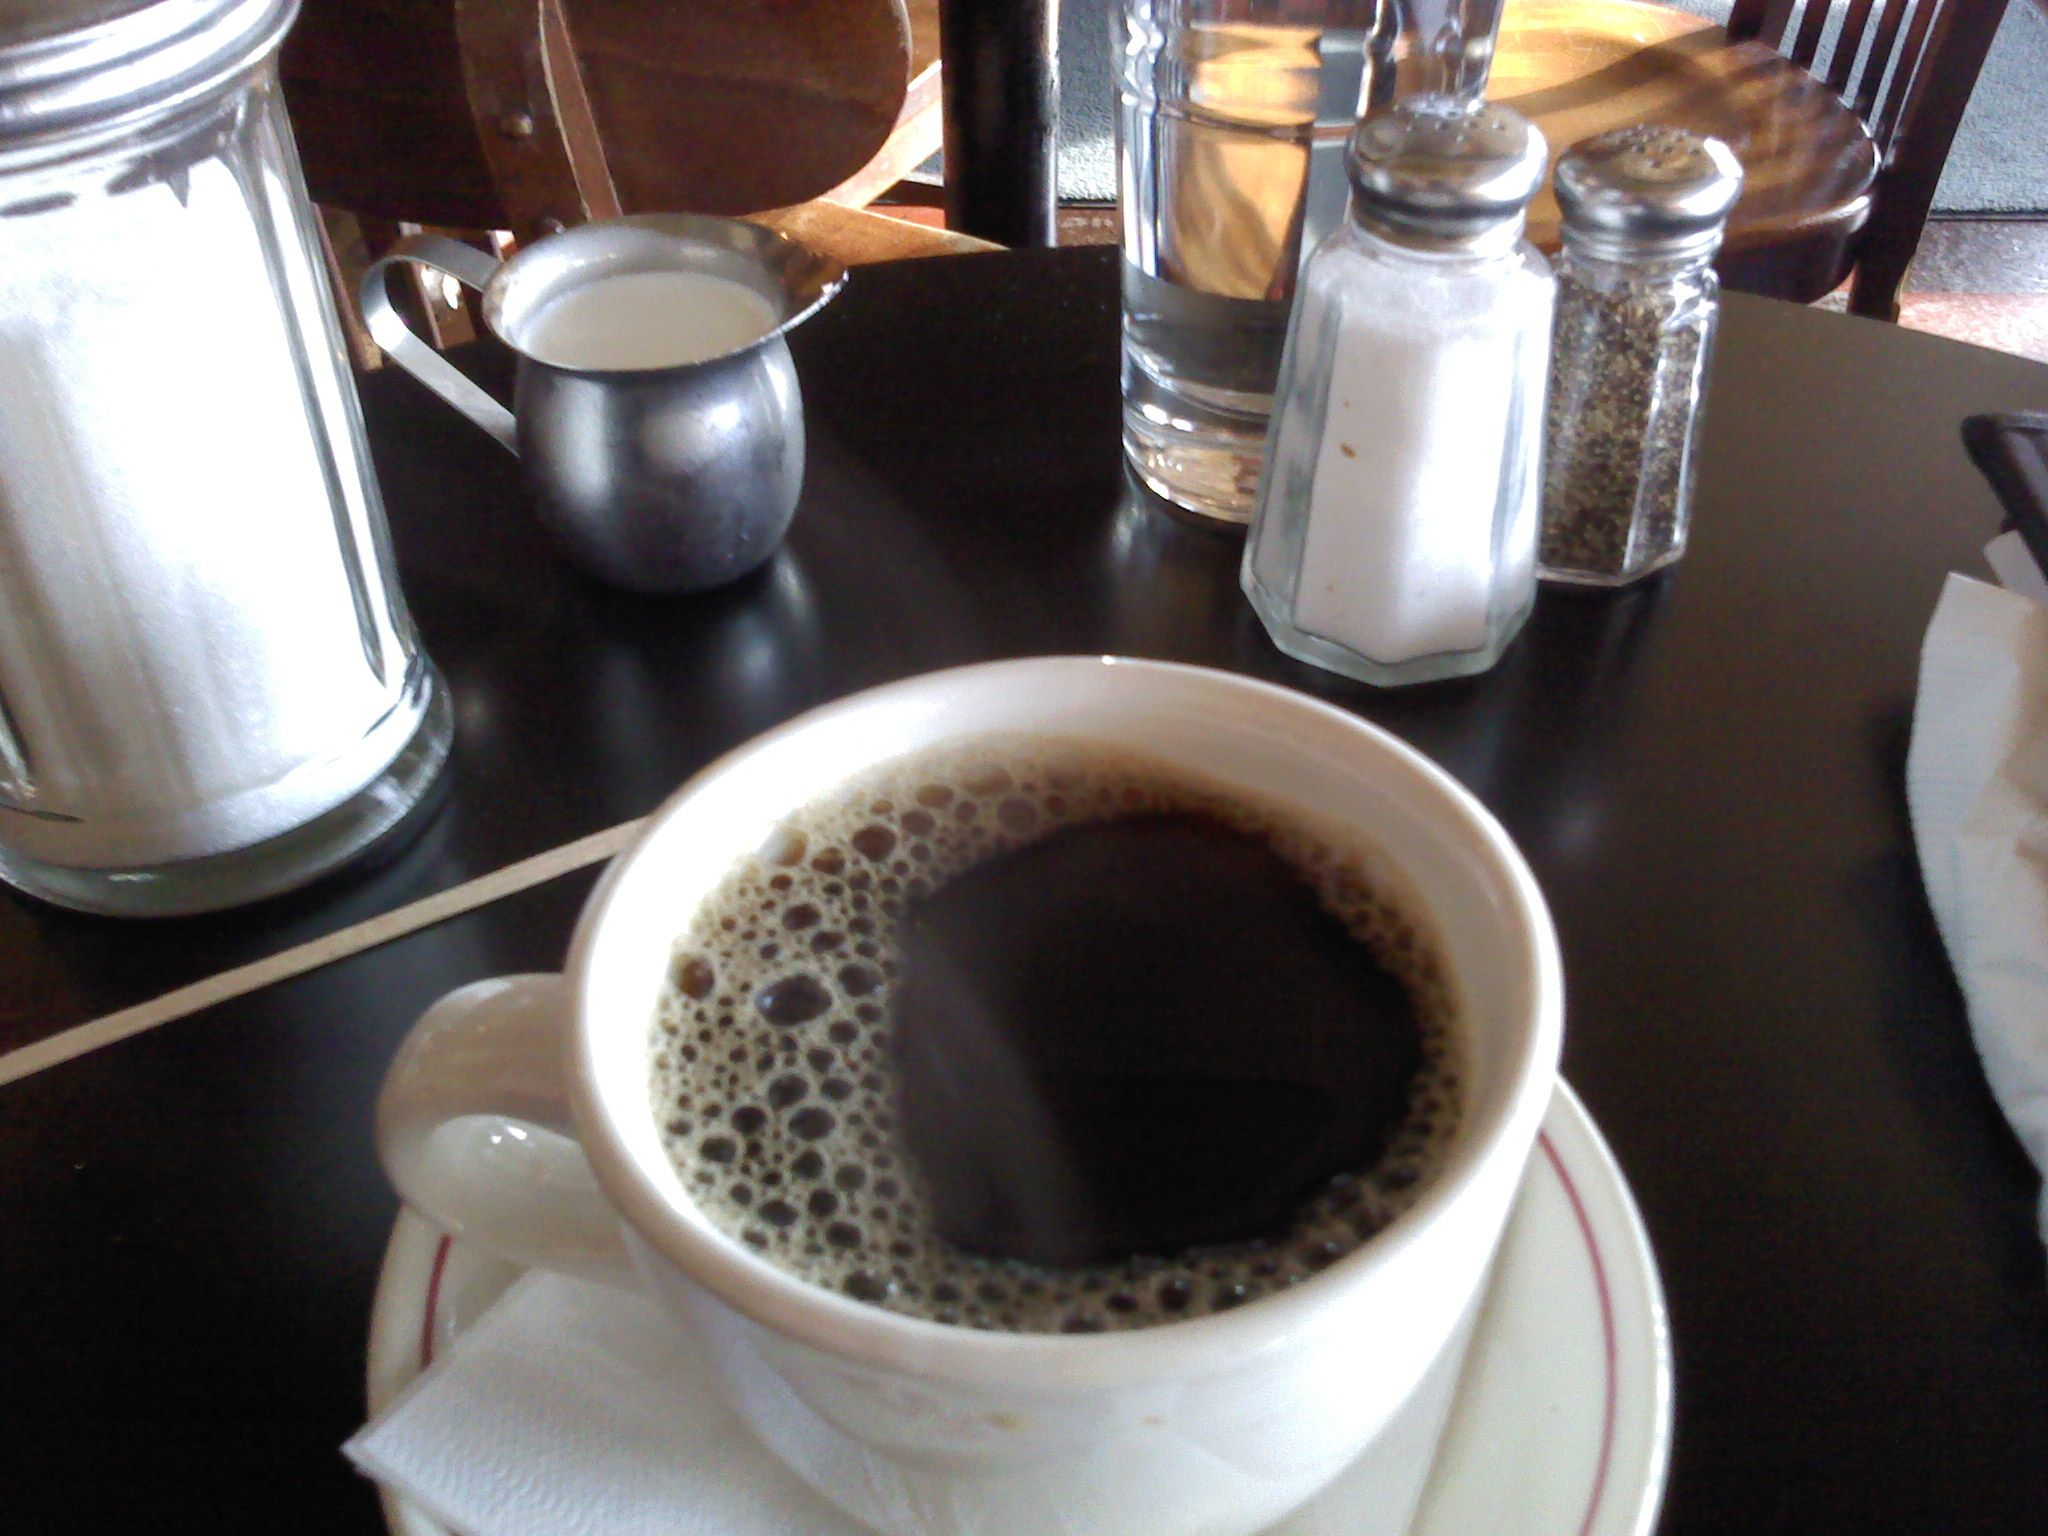 2nd best cup of coffee in town.